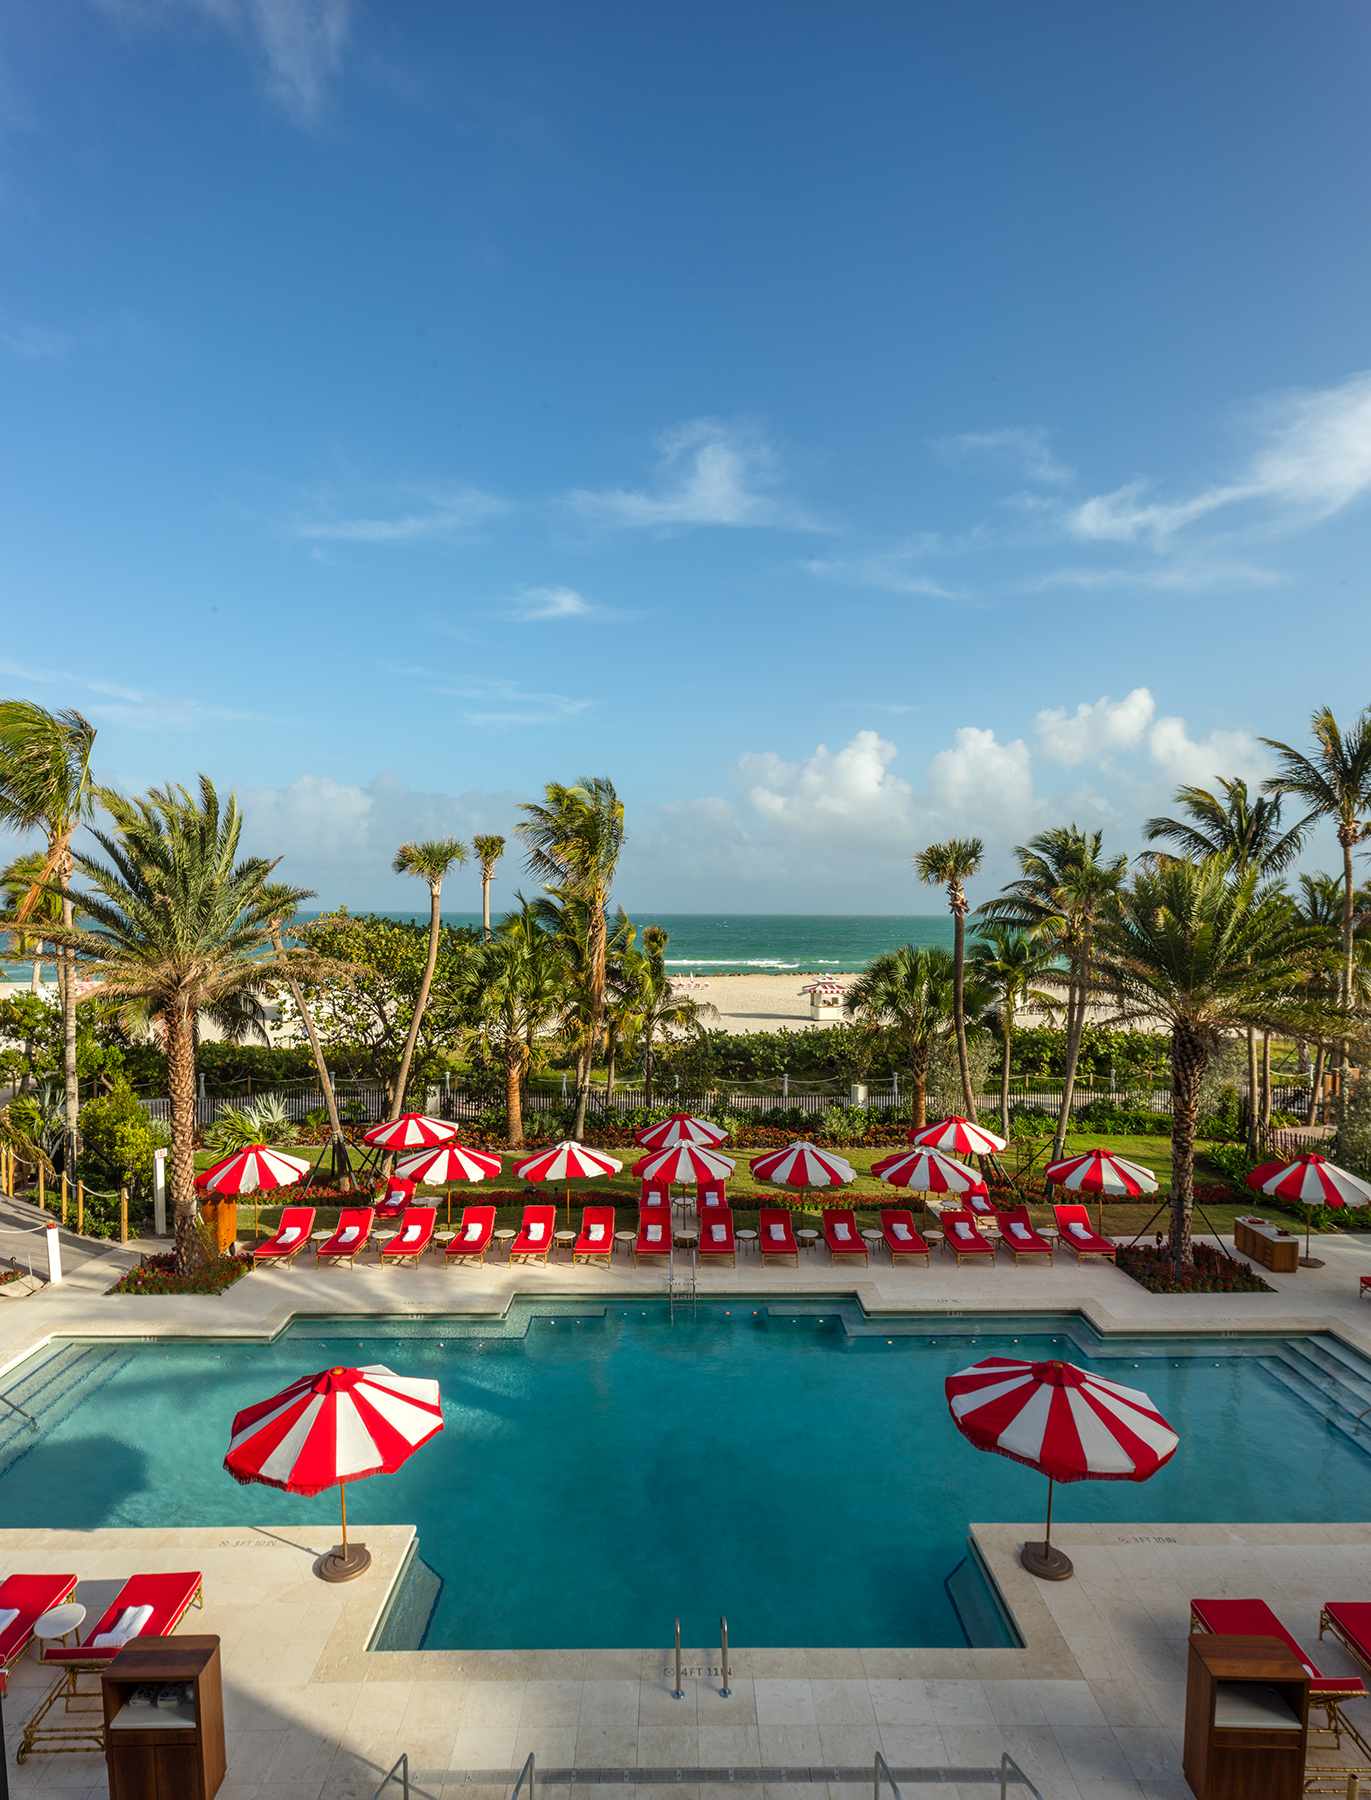 Faena Hotel Pool_Photo by Todd Eberle.jpg